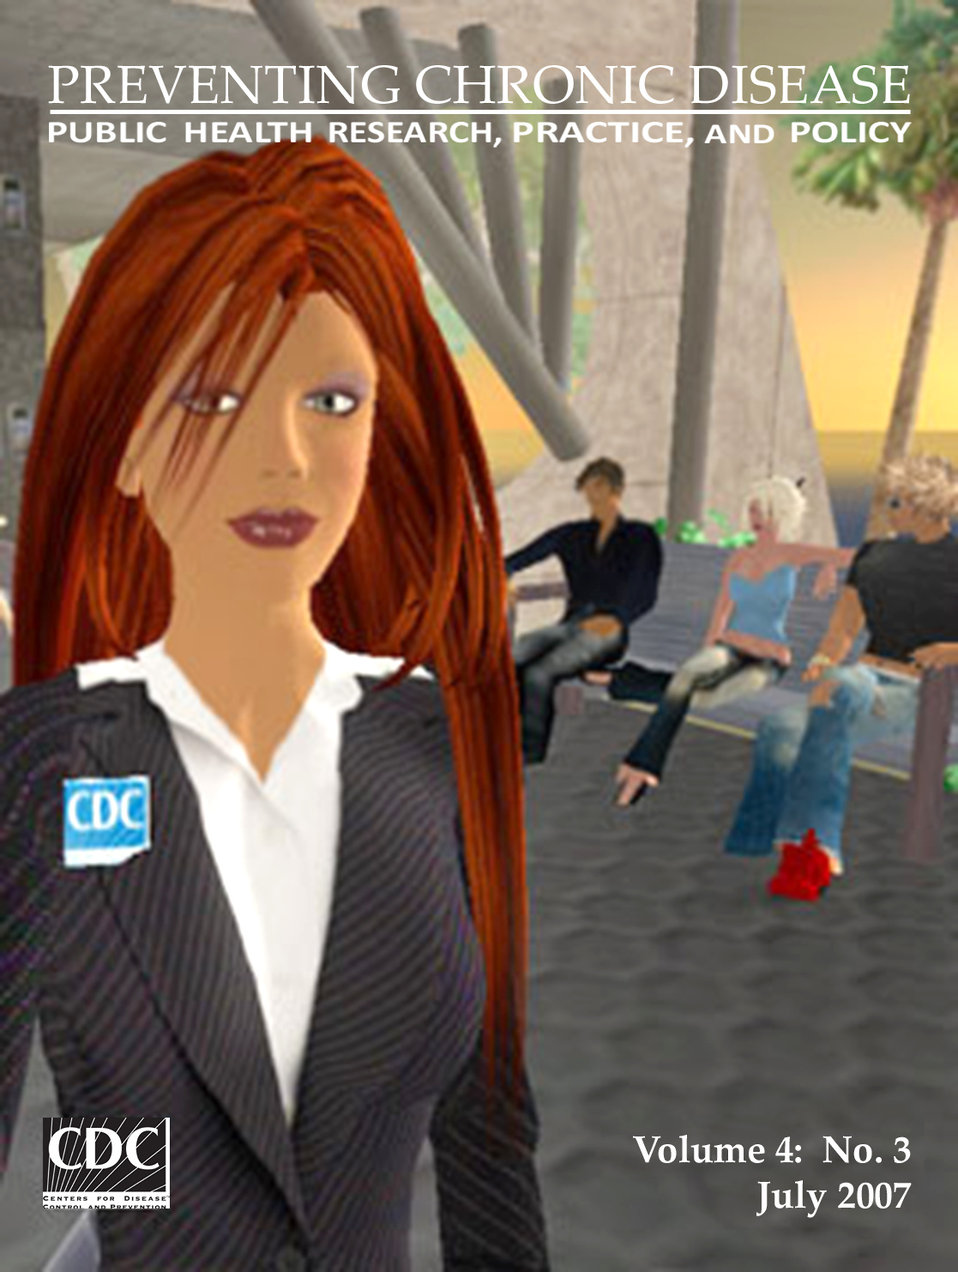 This computer-generated image depicts Hygeia Philo, the CDC's lead avatar in the virtual world of Second Life.  Dr. John Anderton designed H